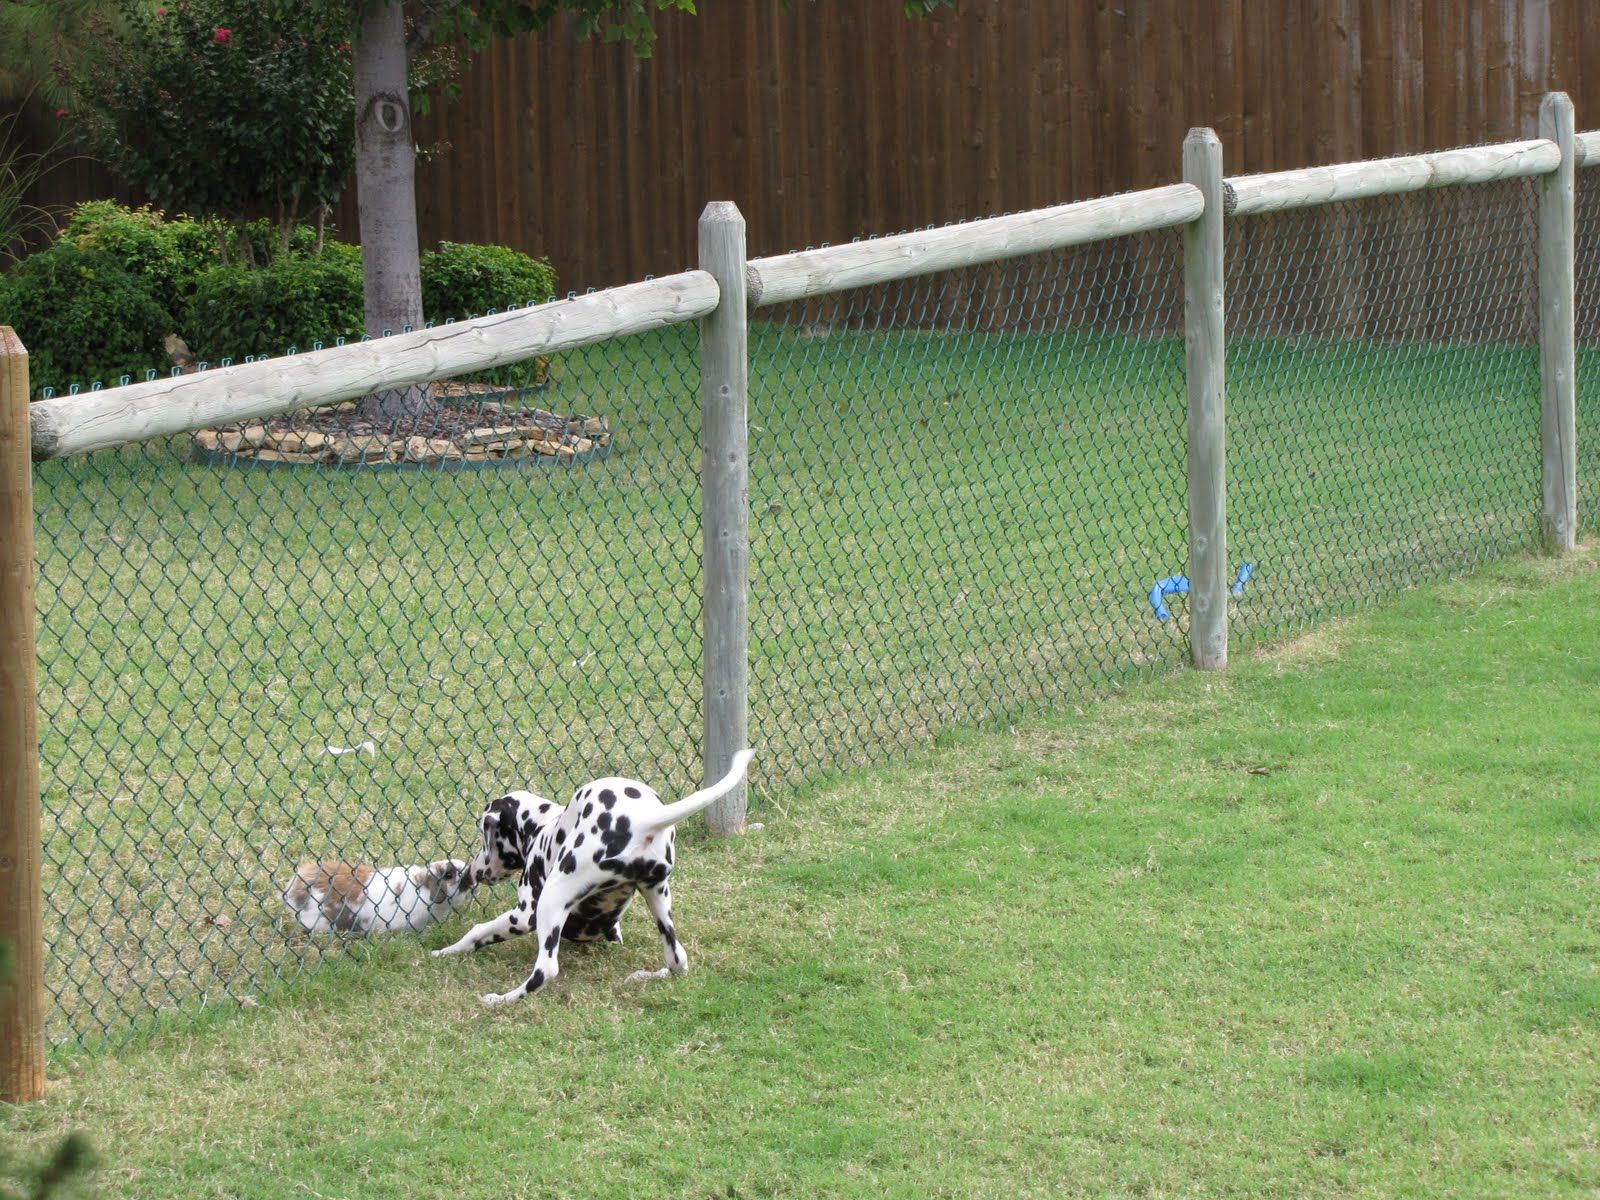 cheap+dog+fence+ideas | free issues of family circle magazine! | dog